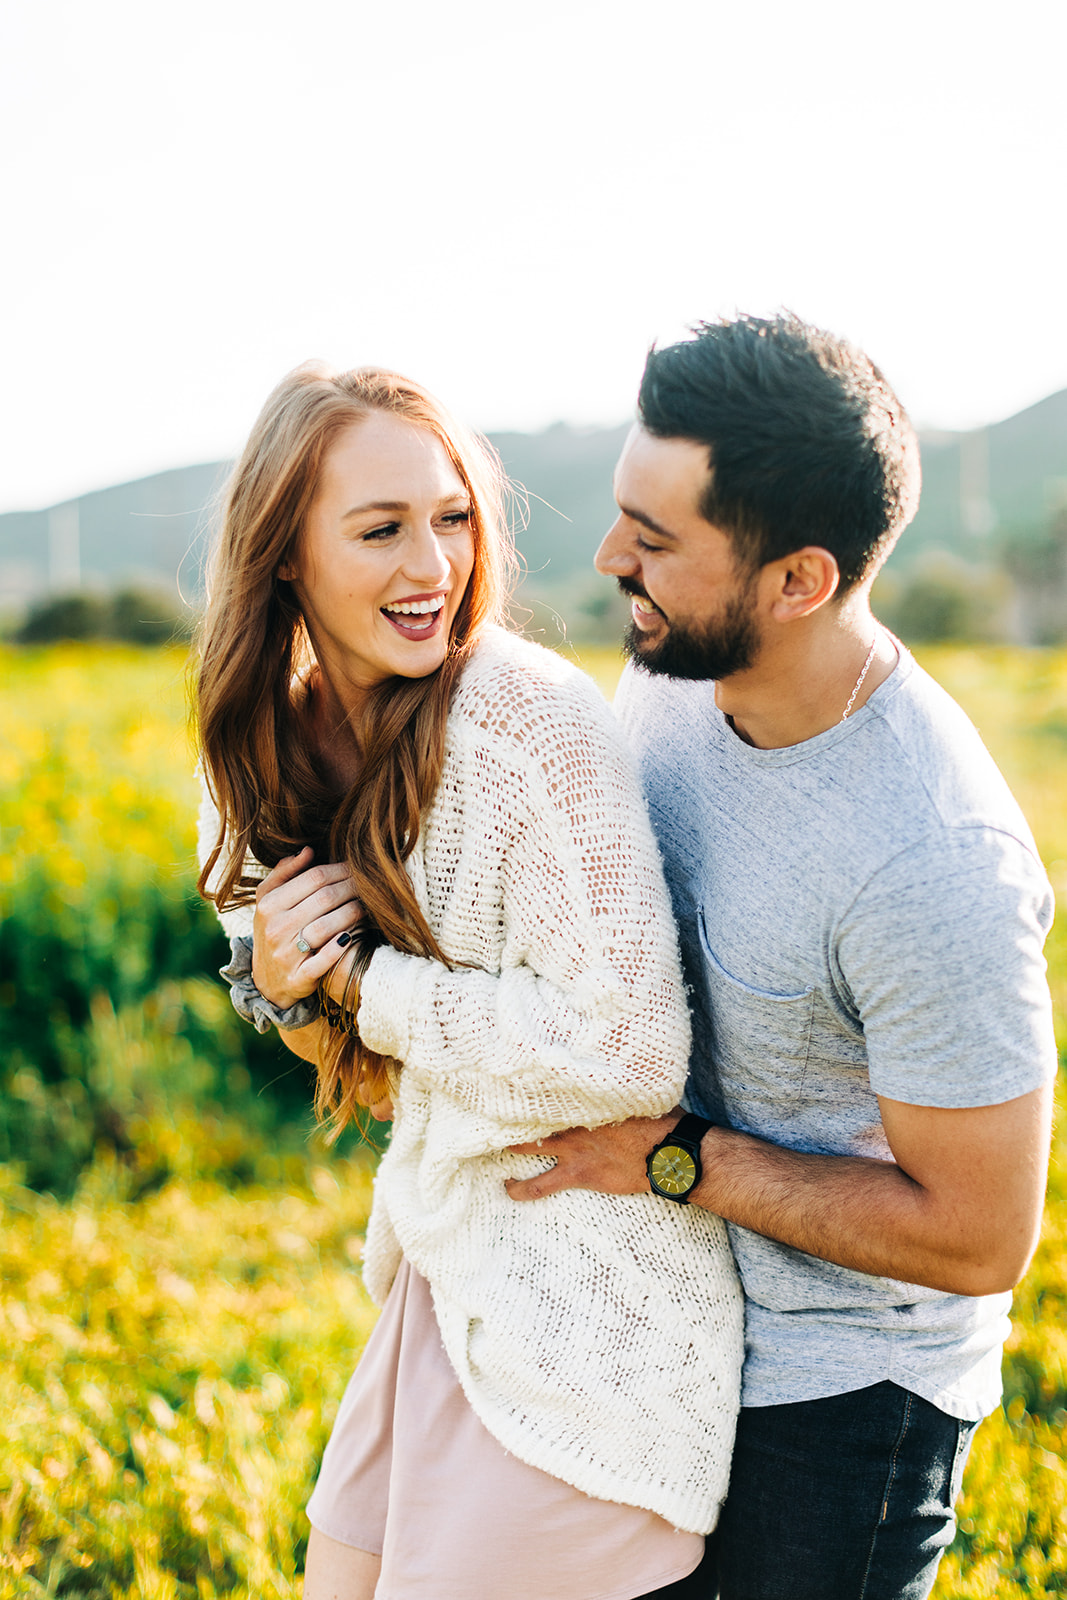 Katie-Yovin_Richard_Superbloom-Engagement-Photos_Clarisse-Rae_Southern-California-Wedding-Photographer-Orange-County-Engagement-Photos-15